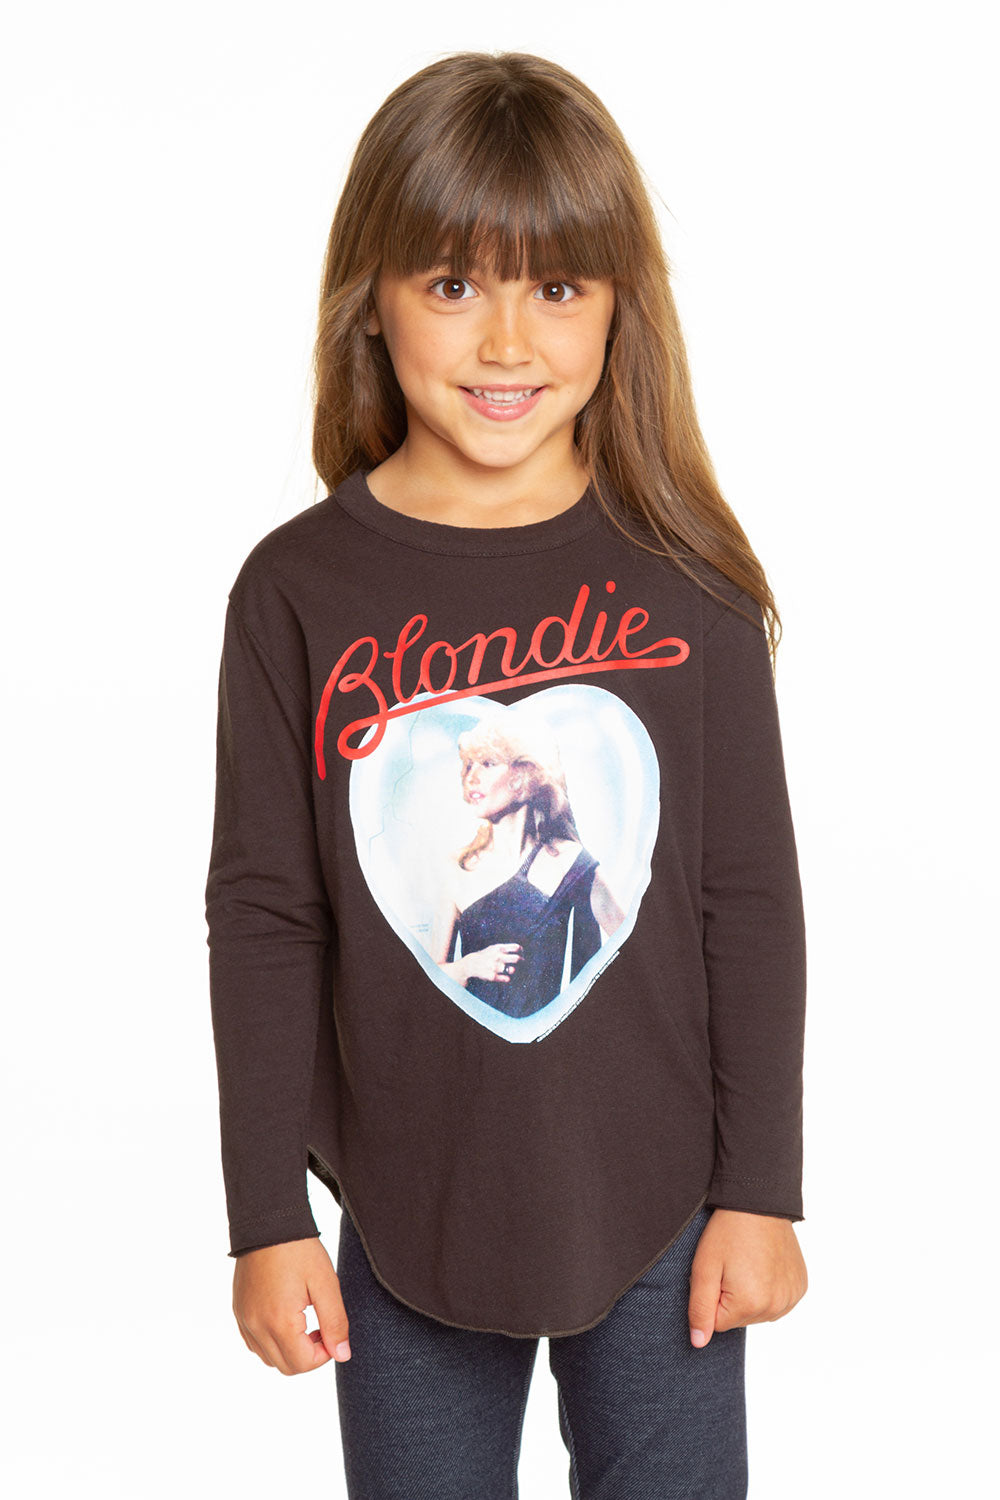 Blondie - Heart Of Glass GIRLS chaserbrand4.myshopify.com